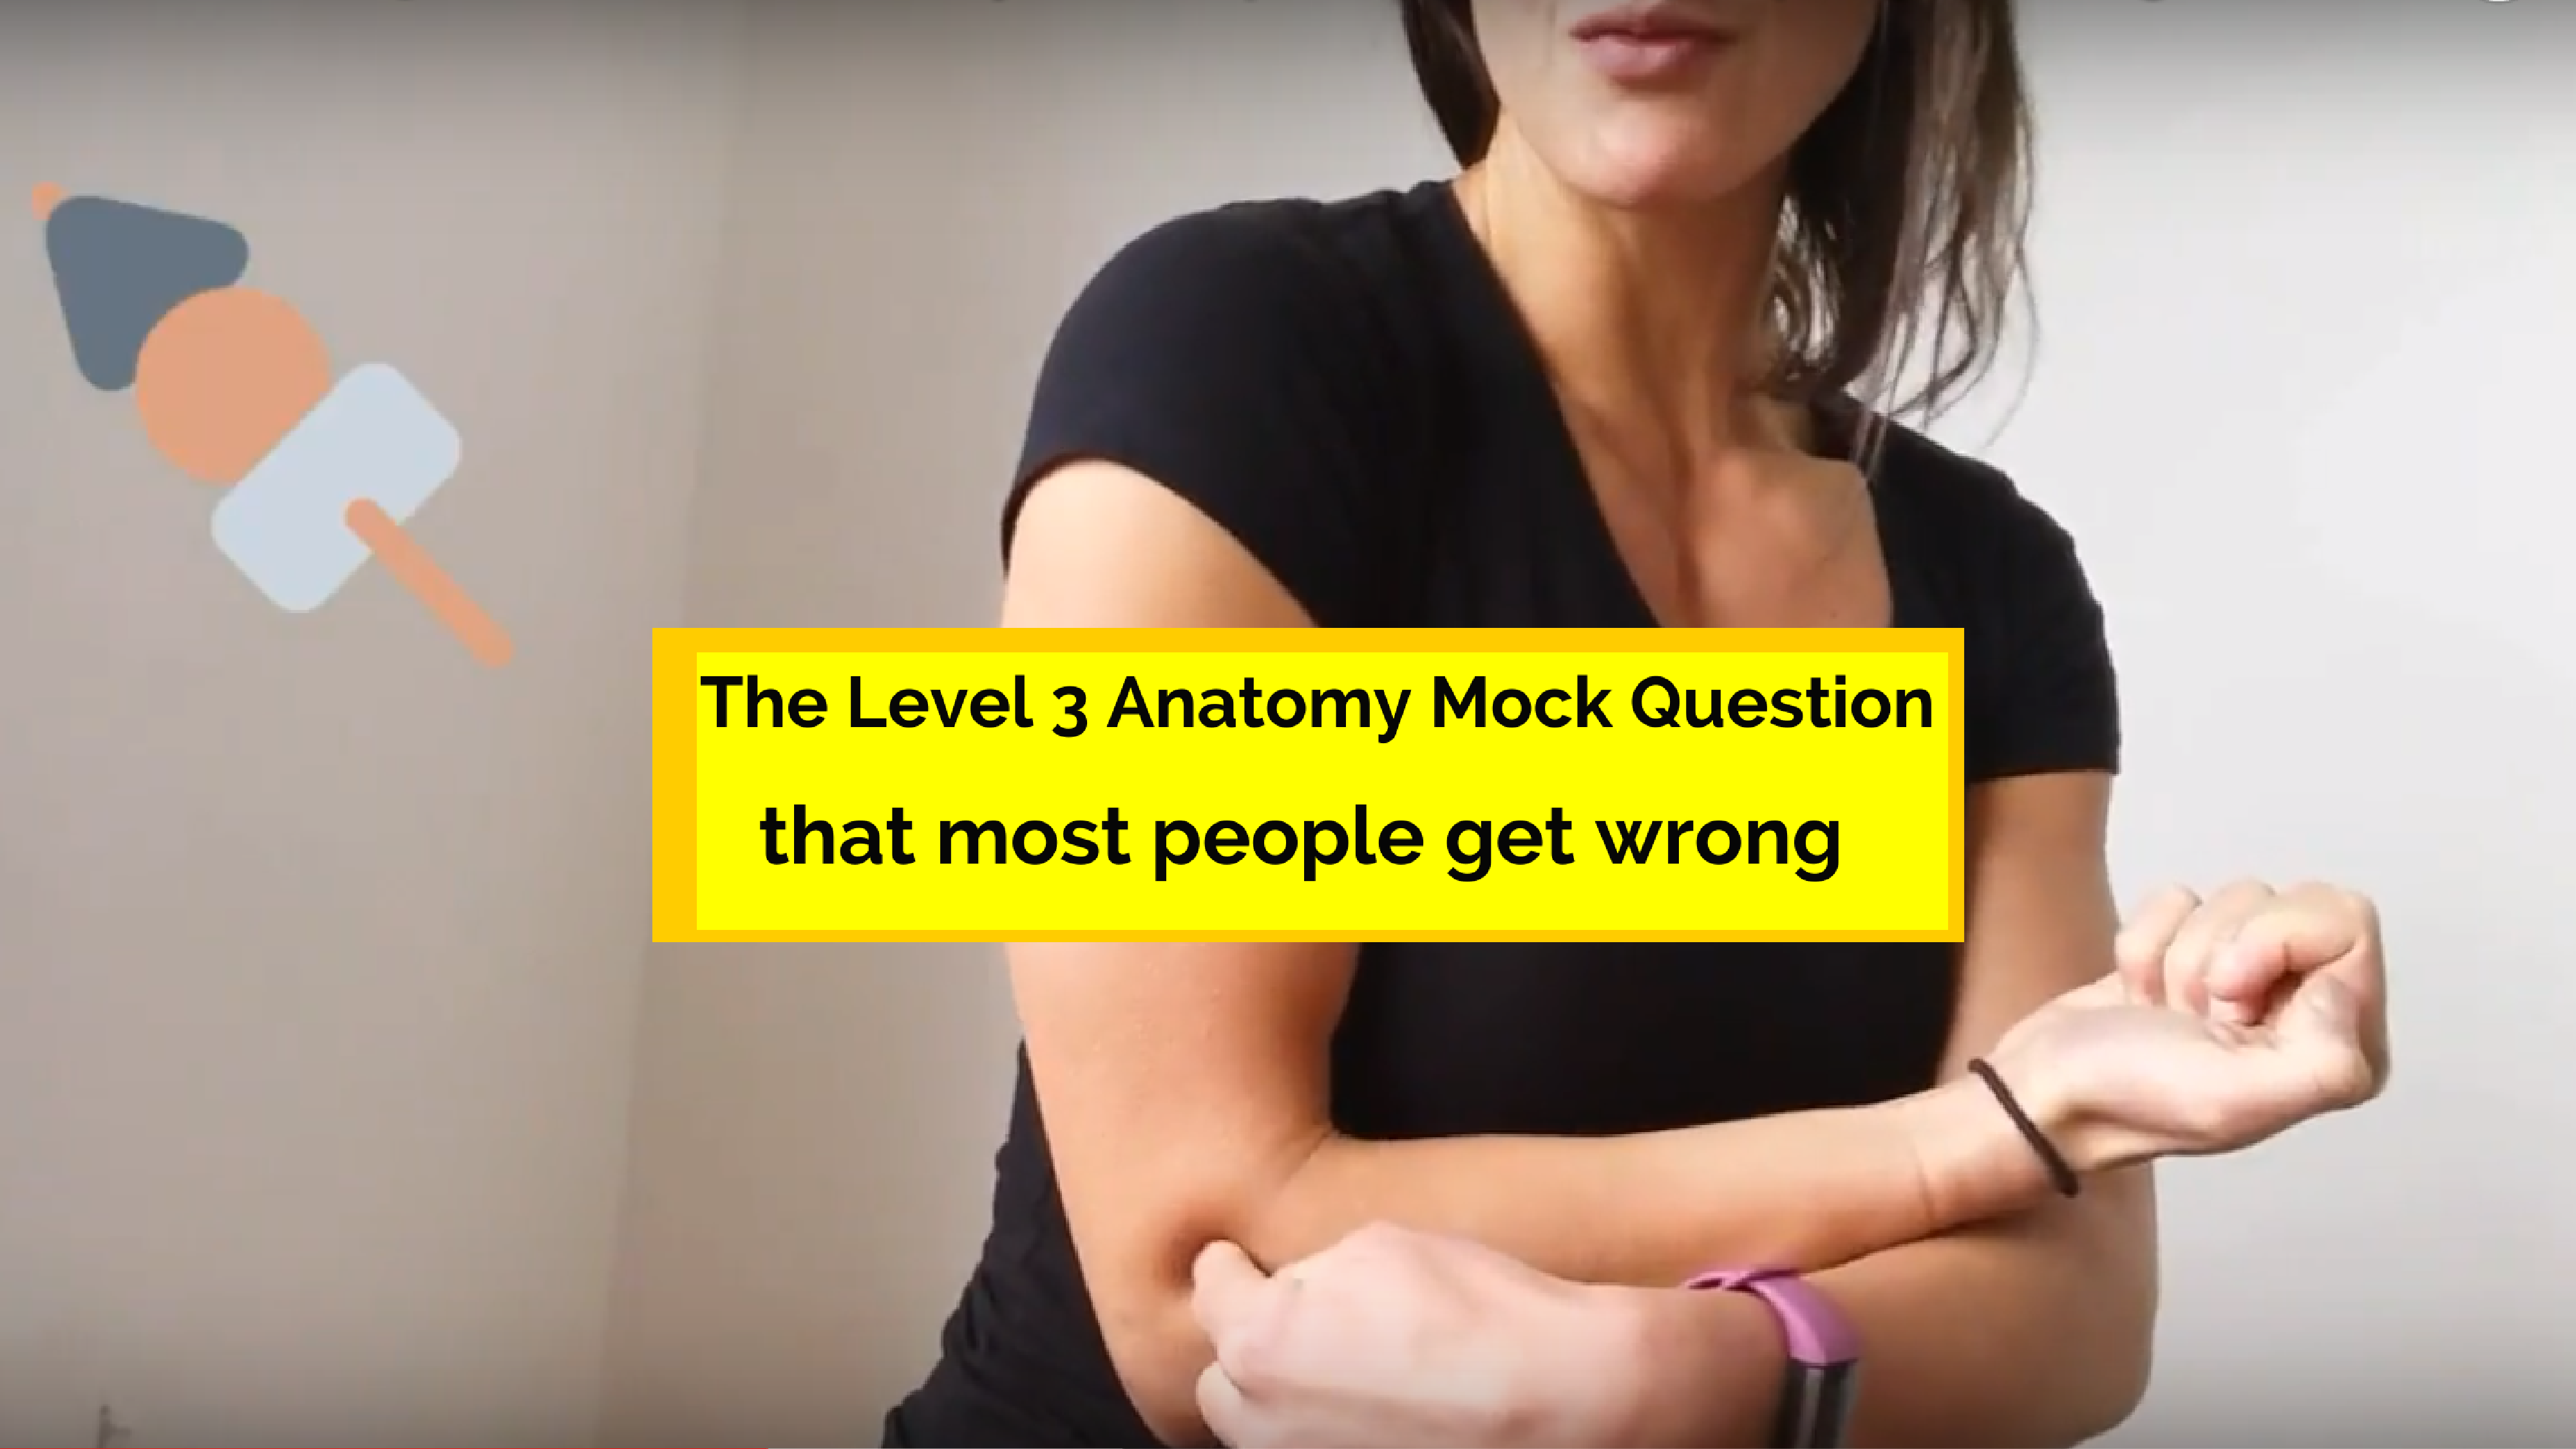 the level 3 anatomy mock question most people get wrong